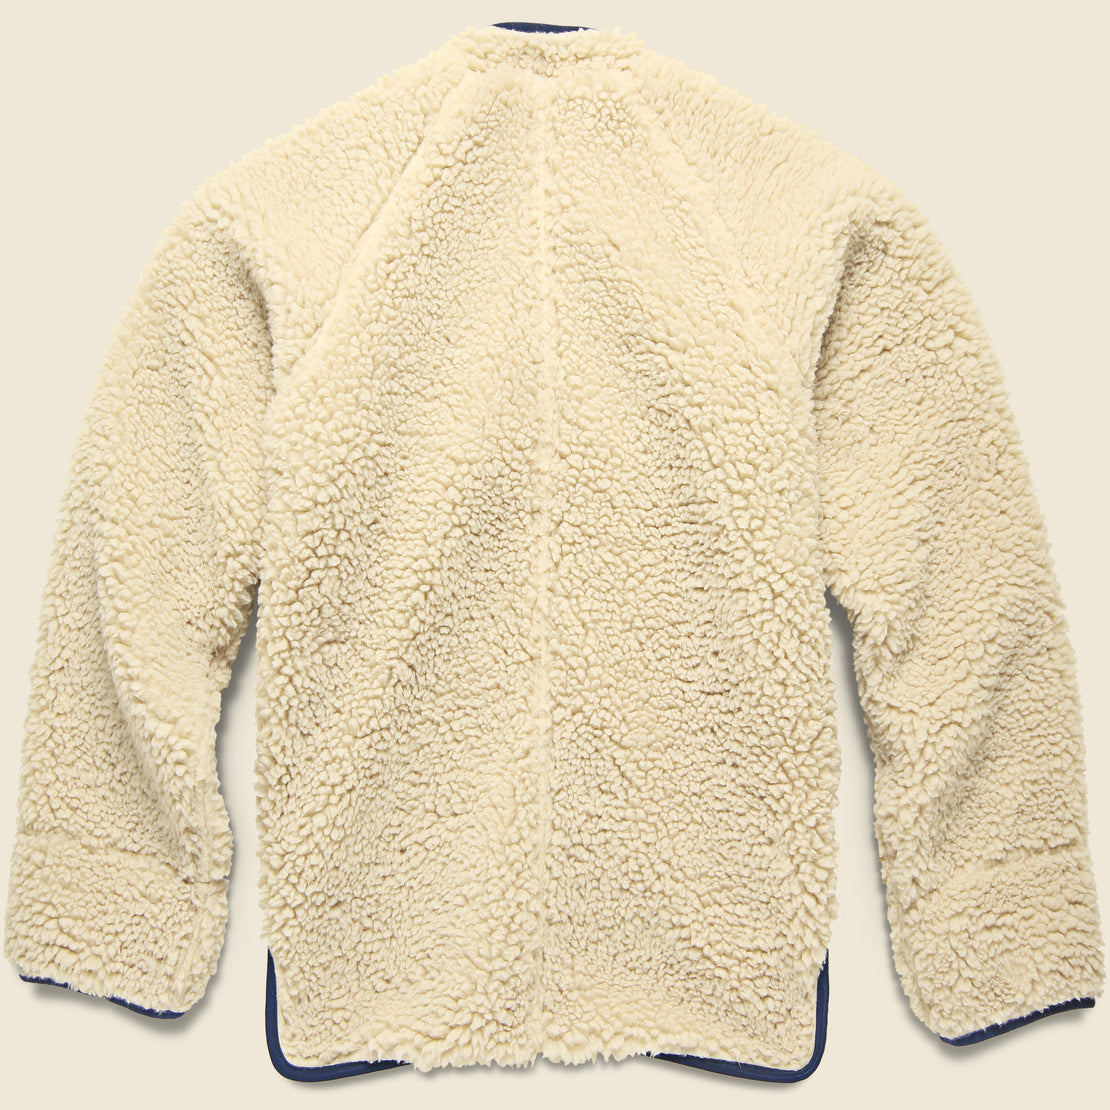 Makani Boa Fleece Jacket - Ecru